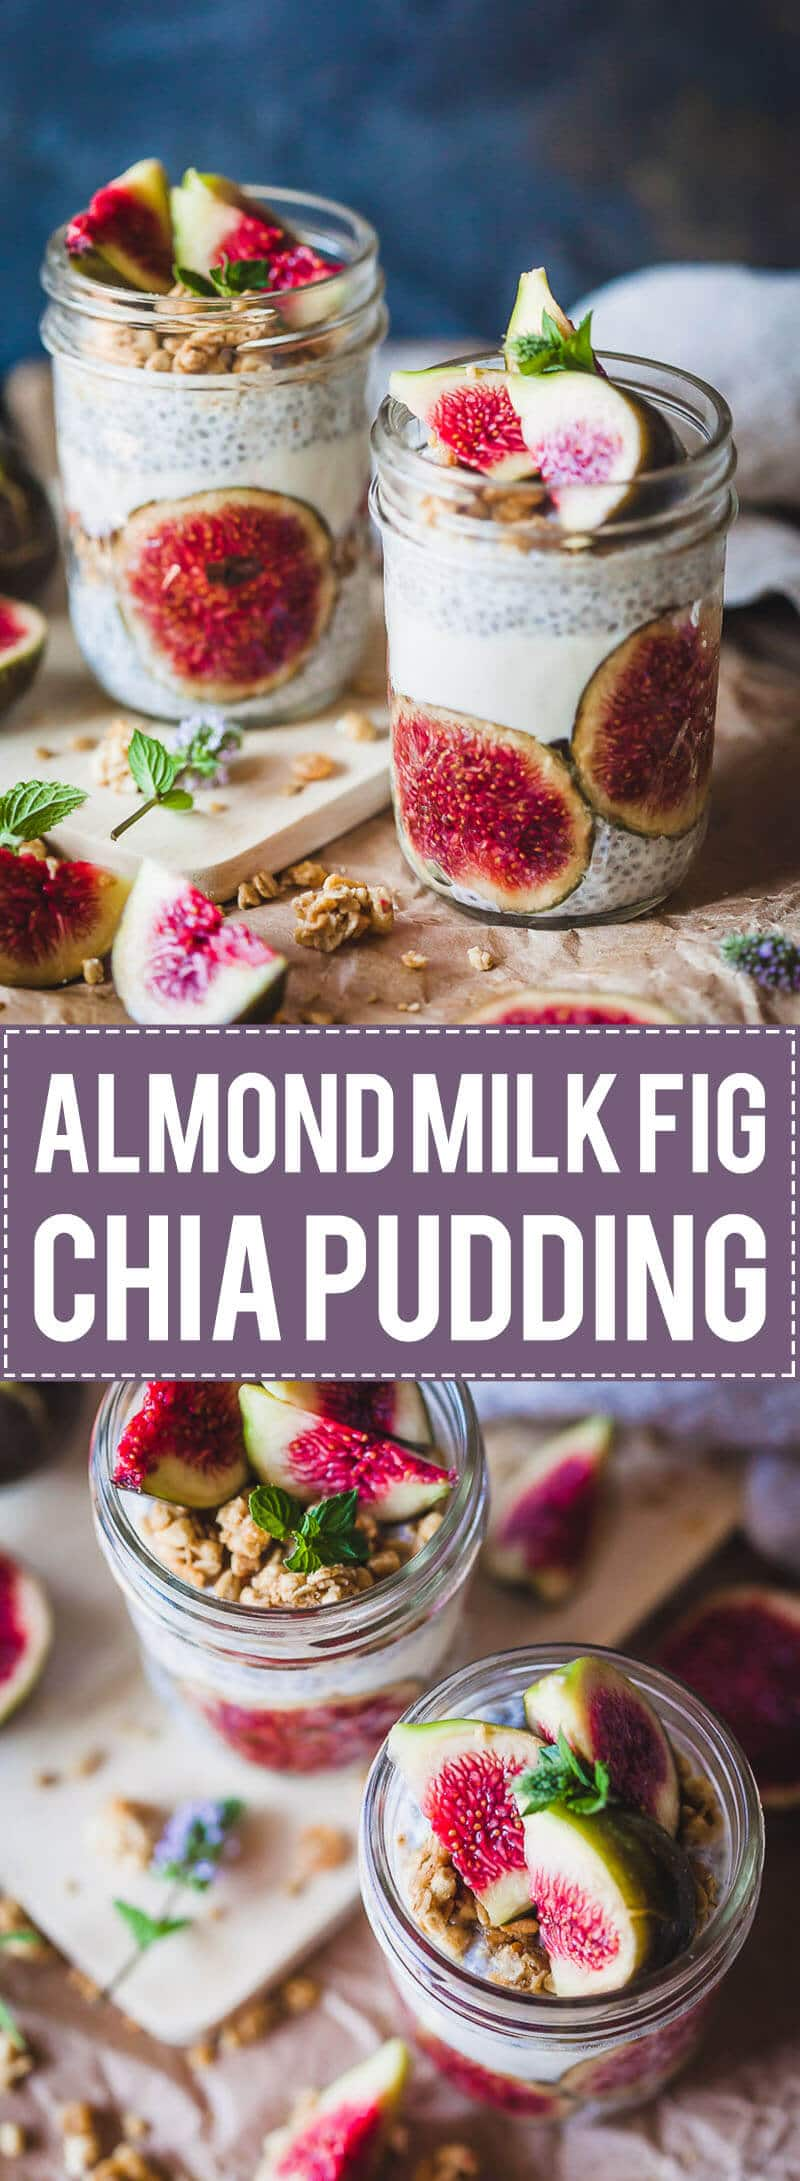 Almond Milk Fig Chia Pudding is pretty, vegan and with no added sugars! An easy and delicious breakfast. #chiapudding #chia